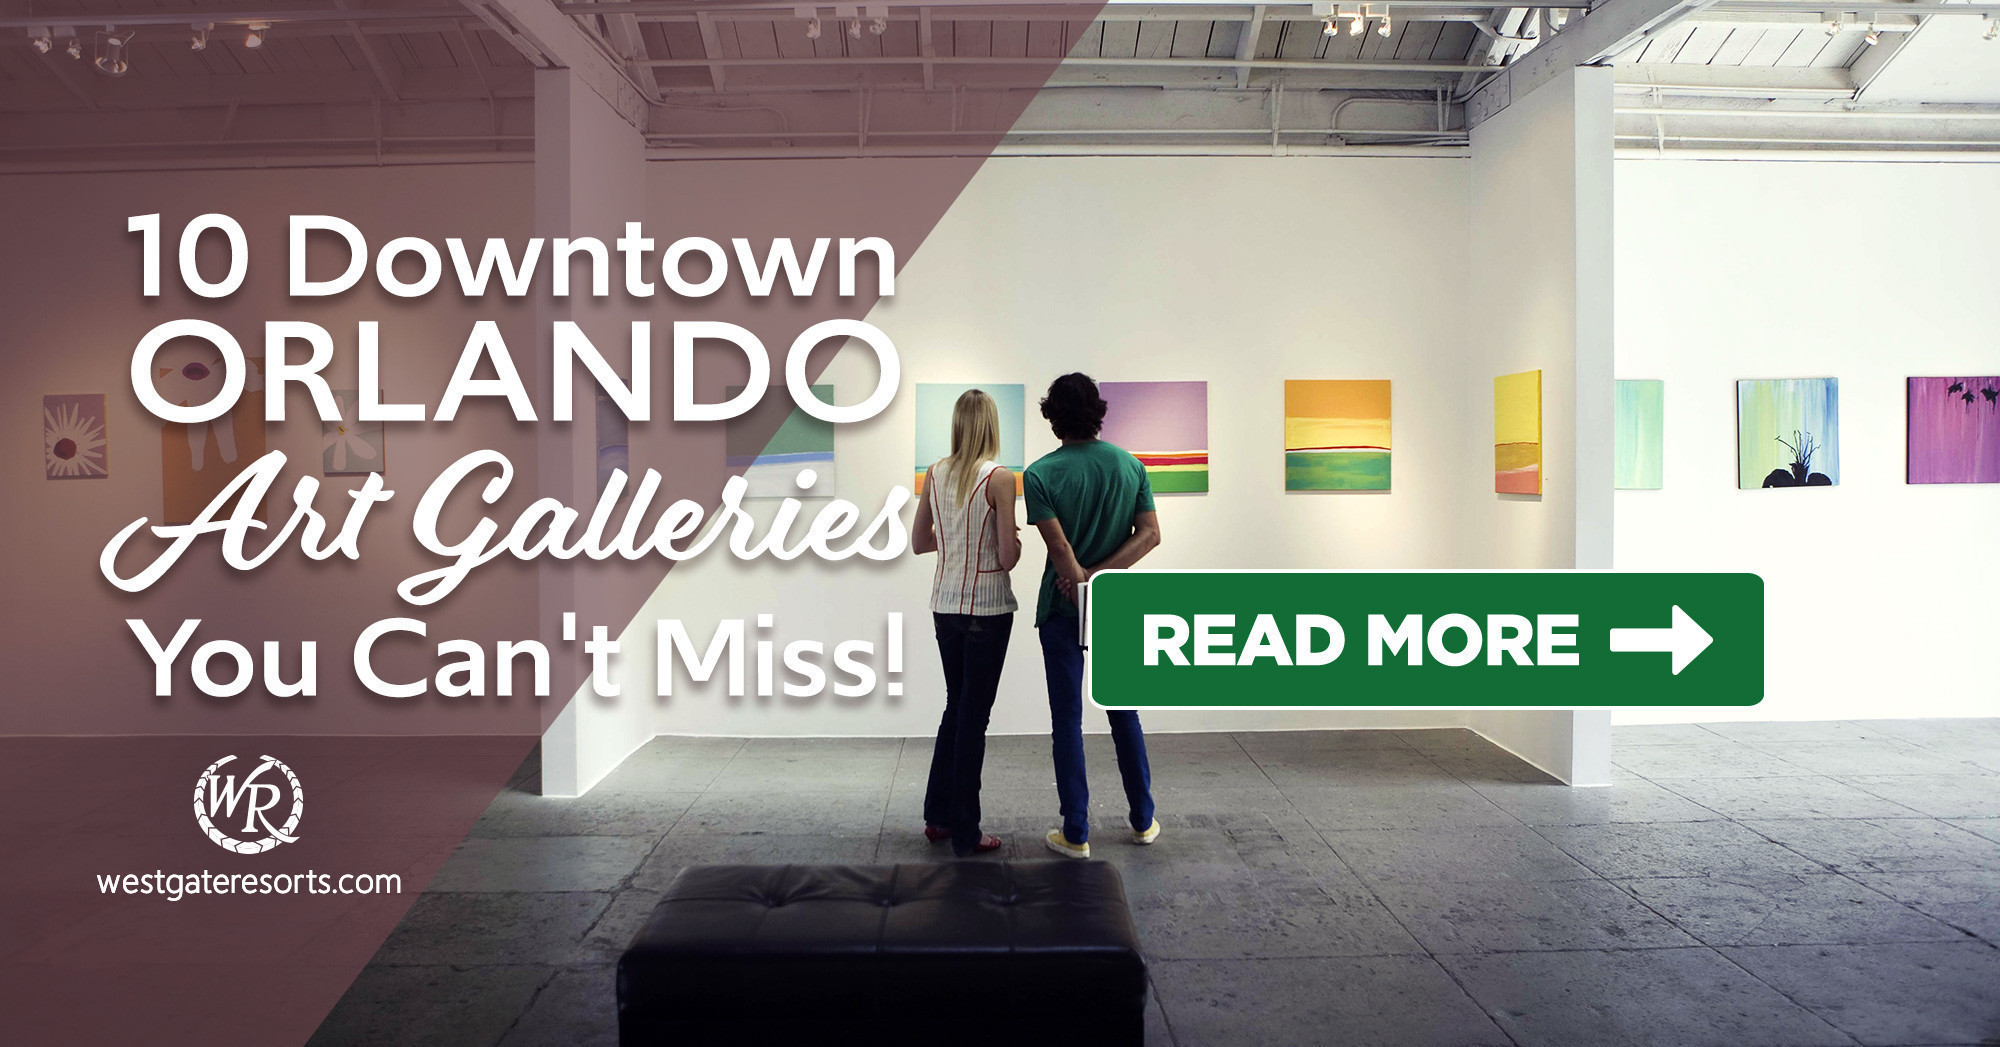 10 Downtown Orlando Art Galleries You Can't Miss!